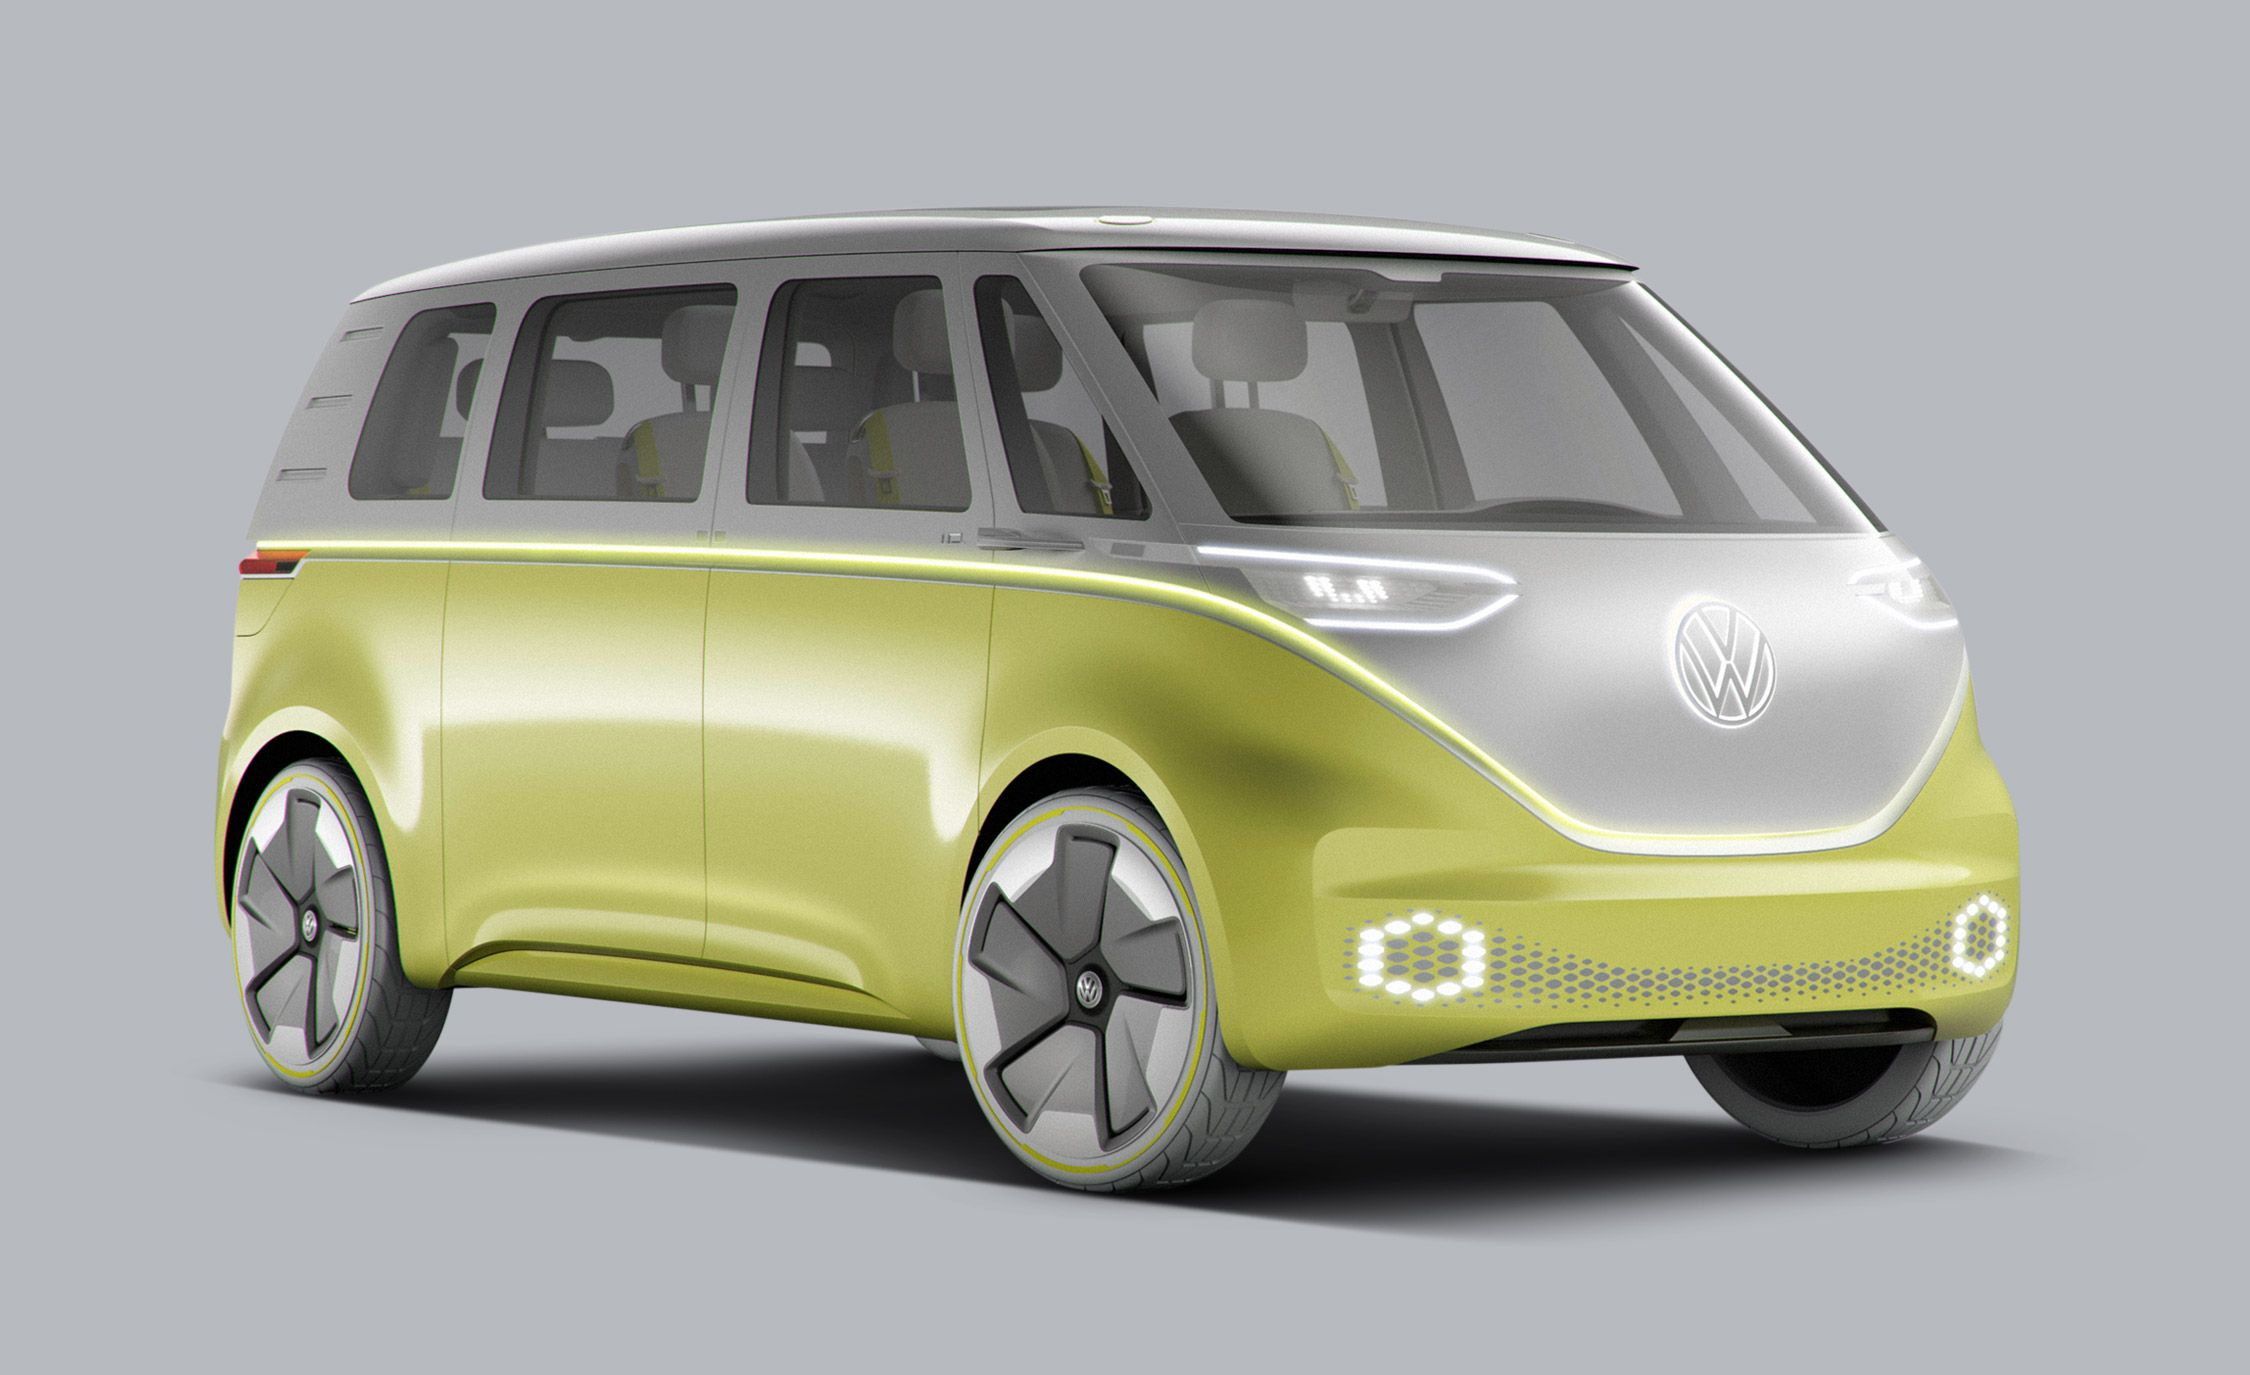 Vw Microbus For Sale >> 2022 Vw Microbus The Electric Resurrection Of An Icon